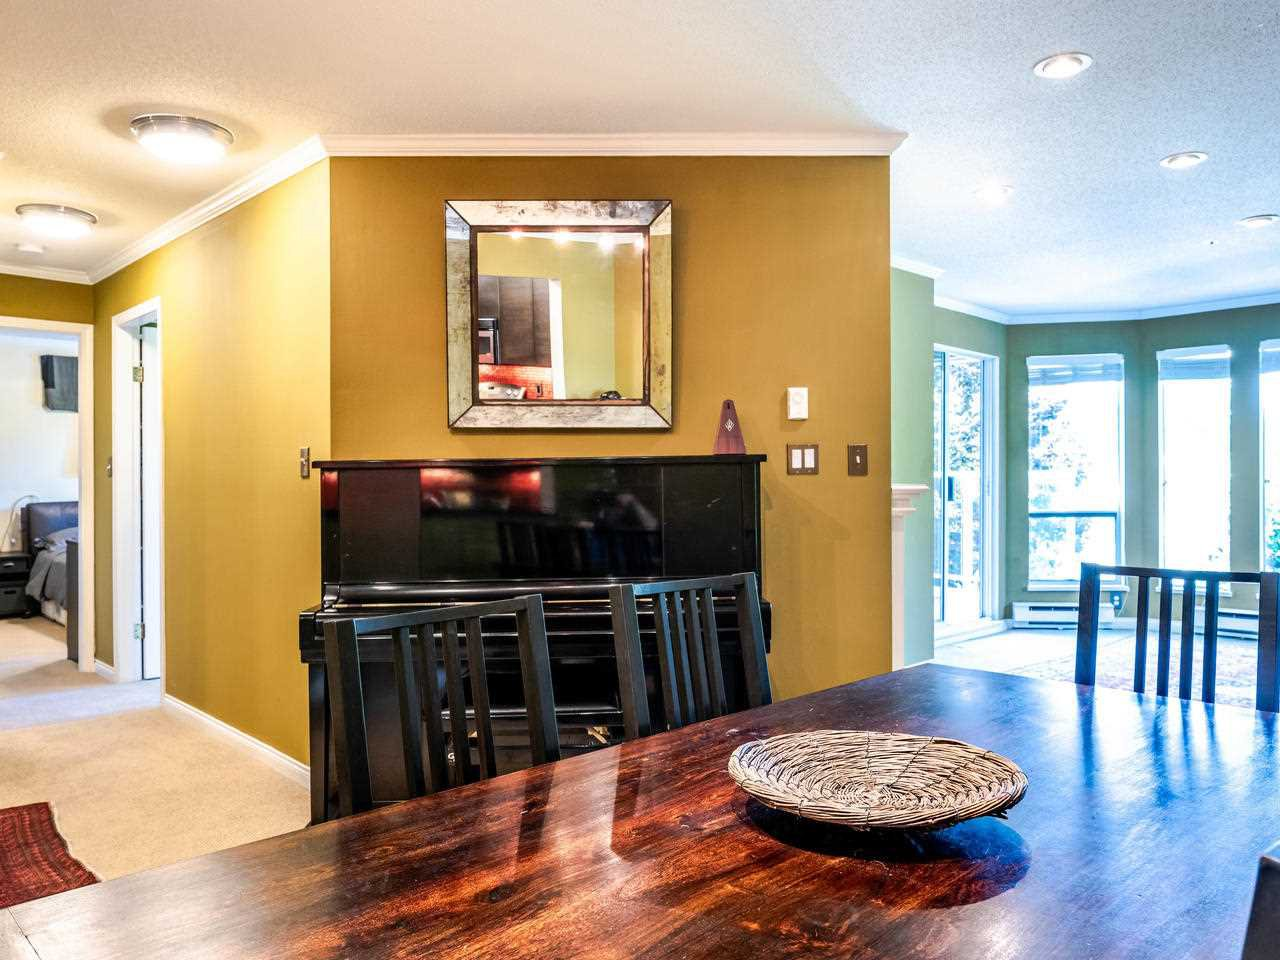 """Photo 21: Photos: 303 2288 W 12TH Avenue in Vancouver: Kitsilano Condo for sale in """"Connaught Point"""" (Vancouver West)  : MLS®# R2494985"""